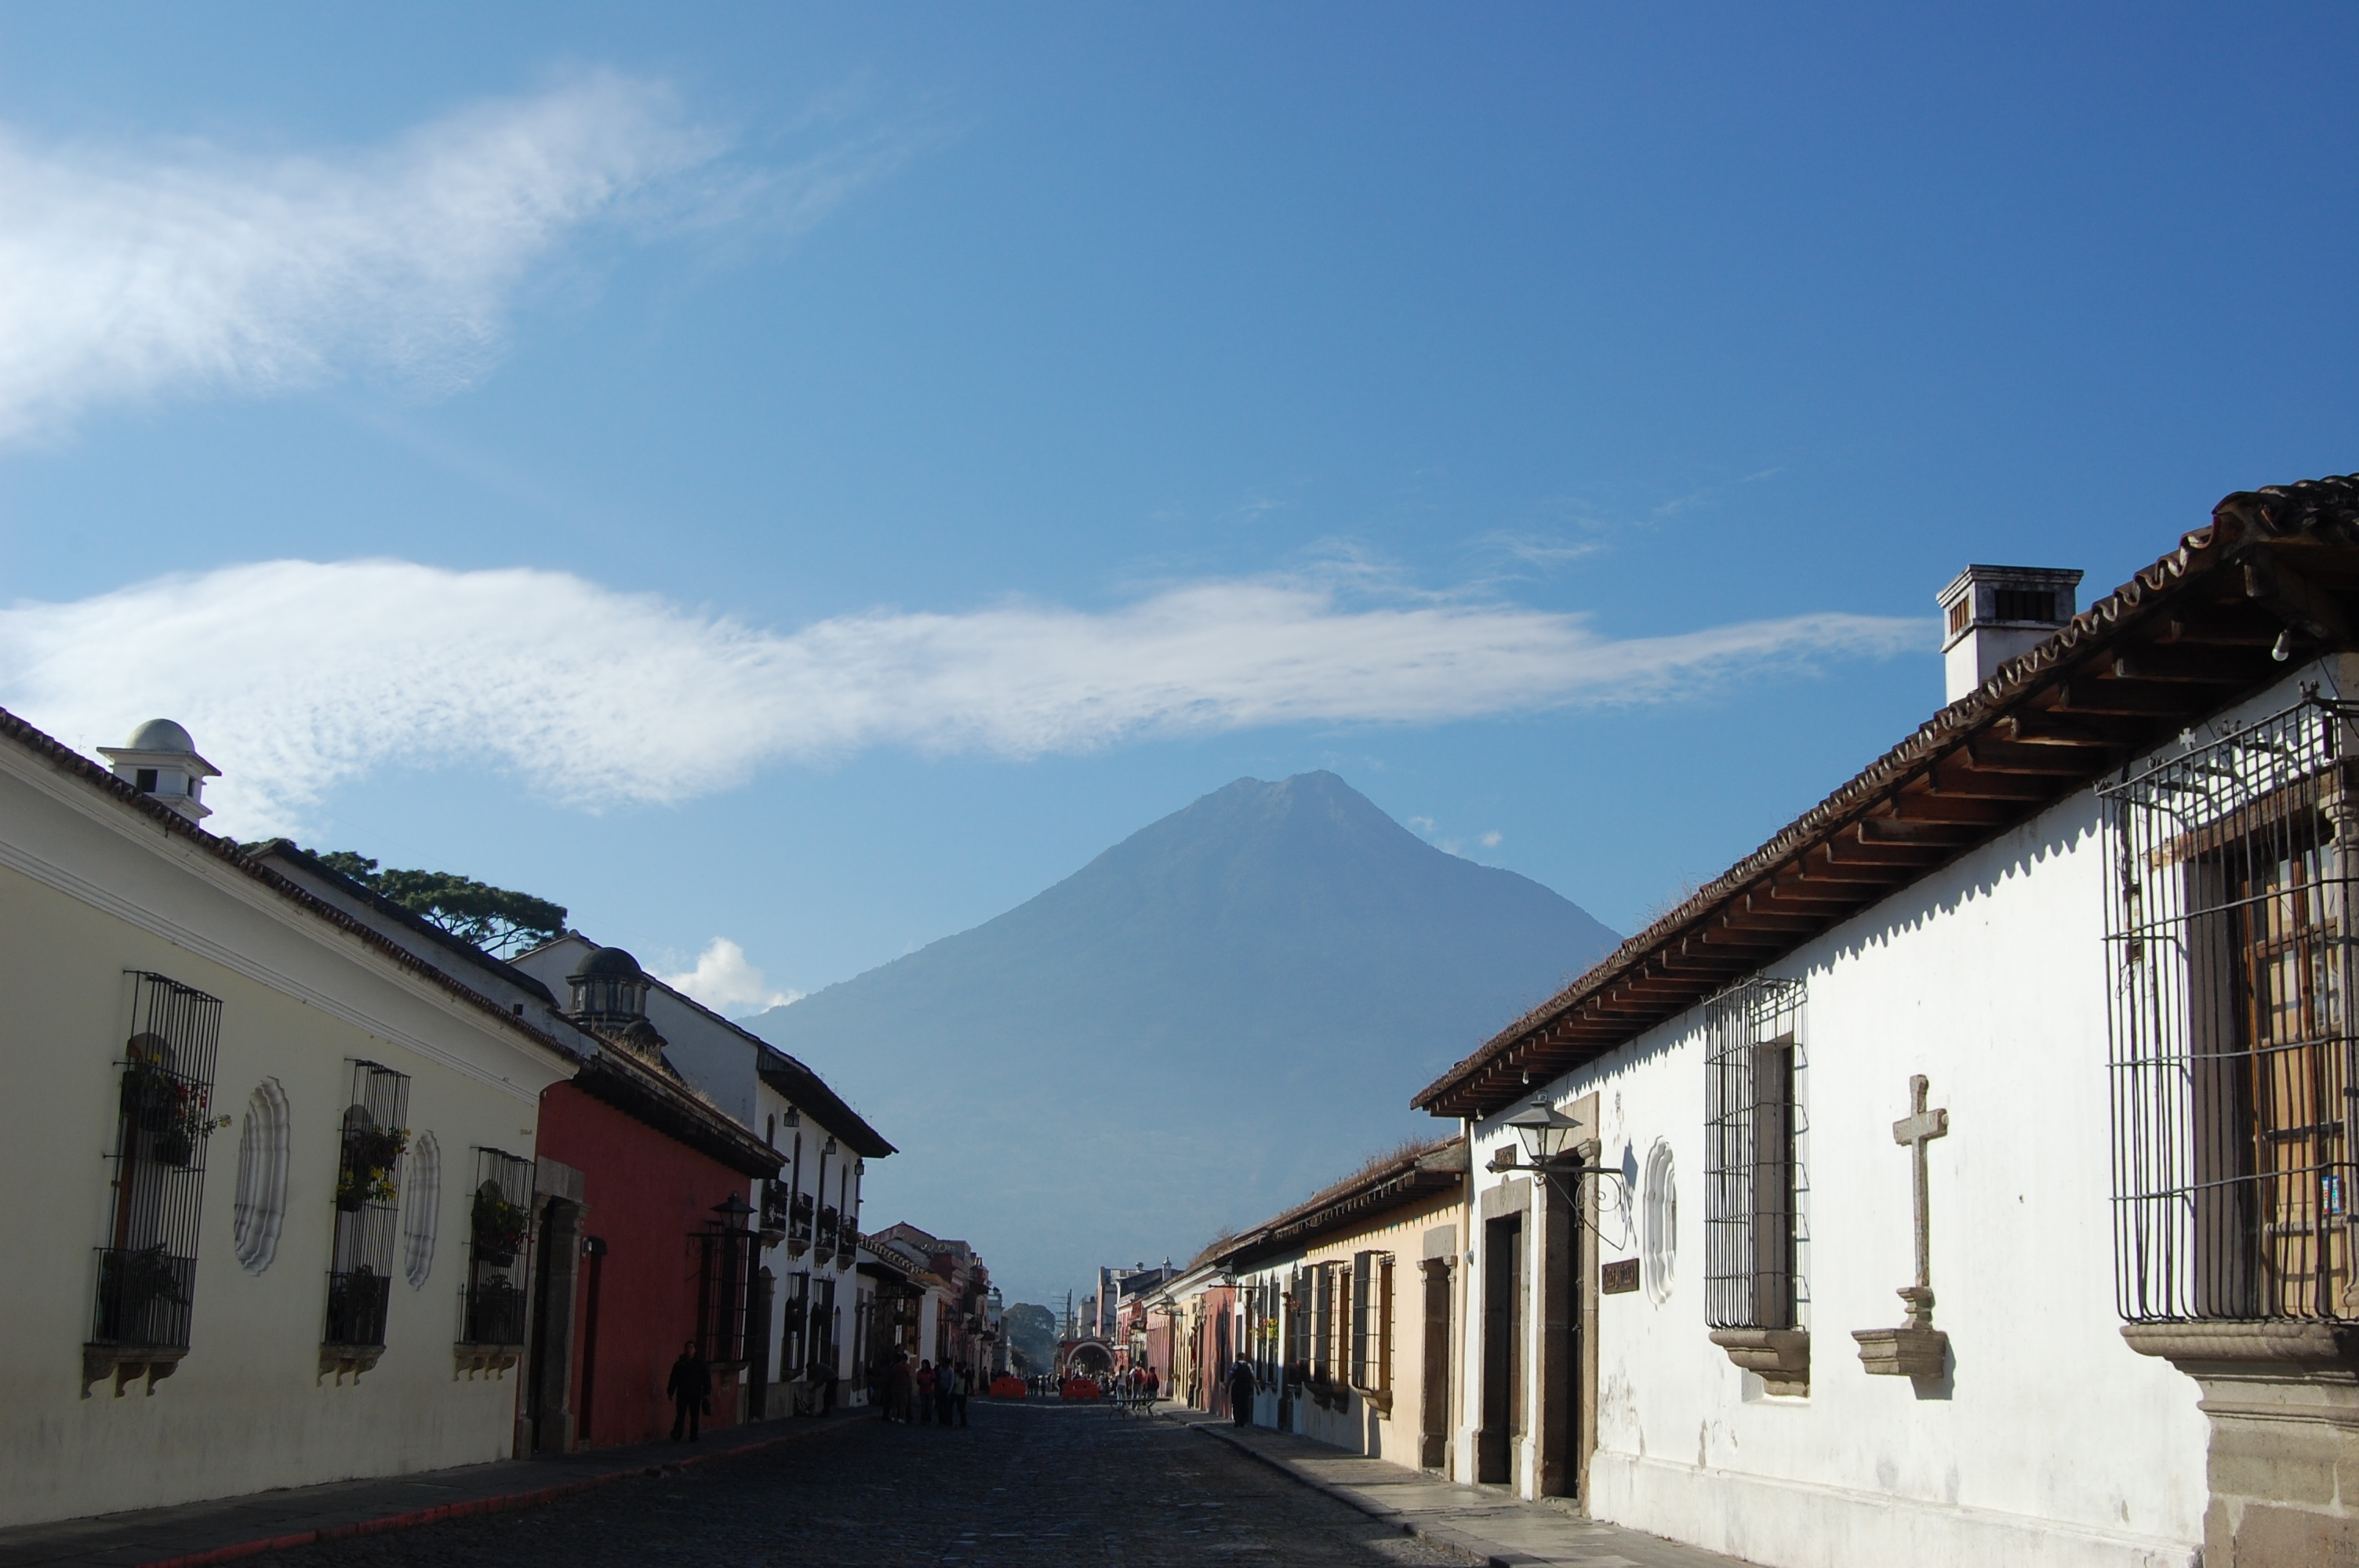 Street with beautiful Spanish colonial architecture and volcano looming in the distance.